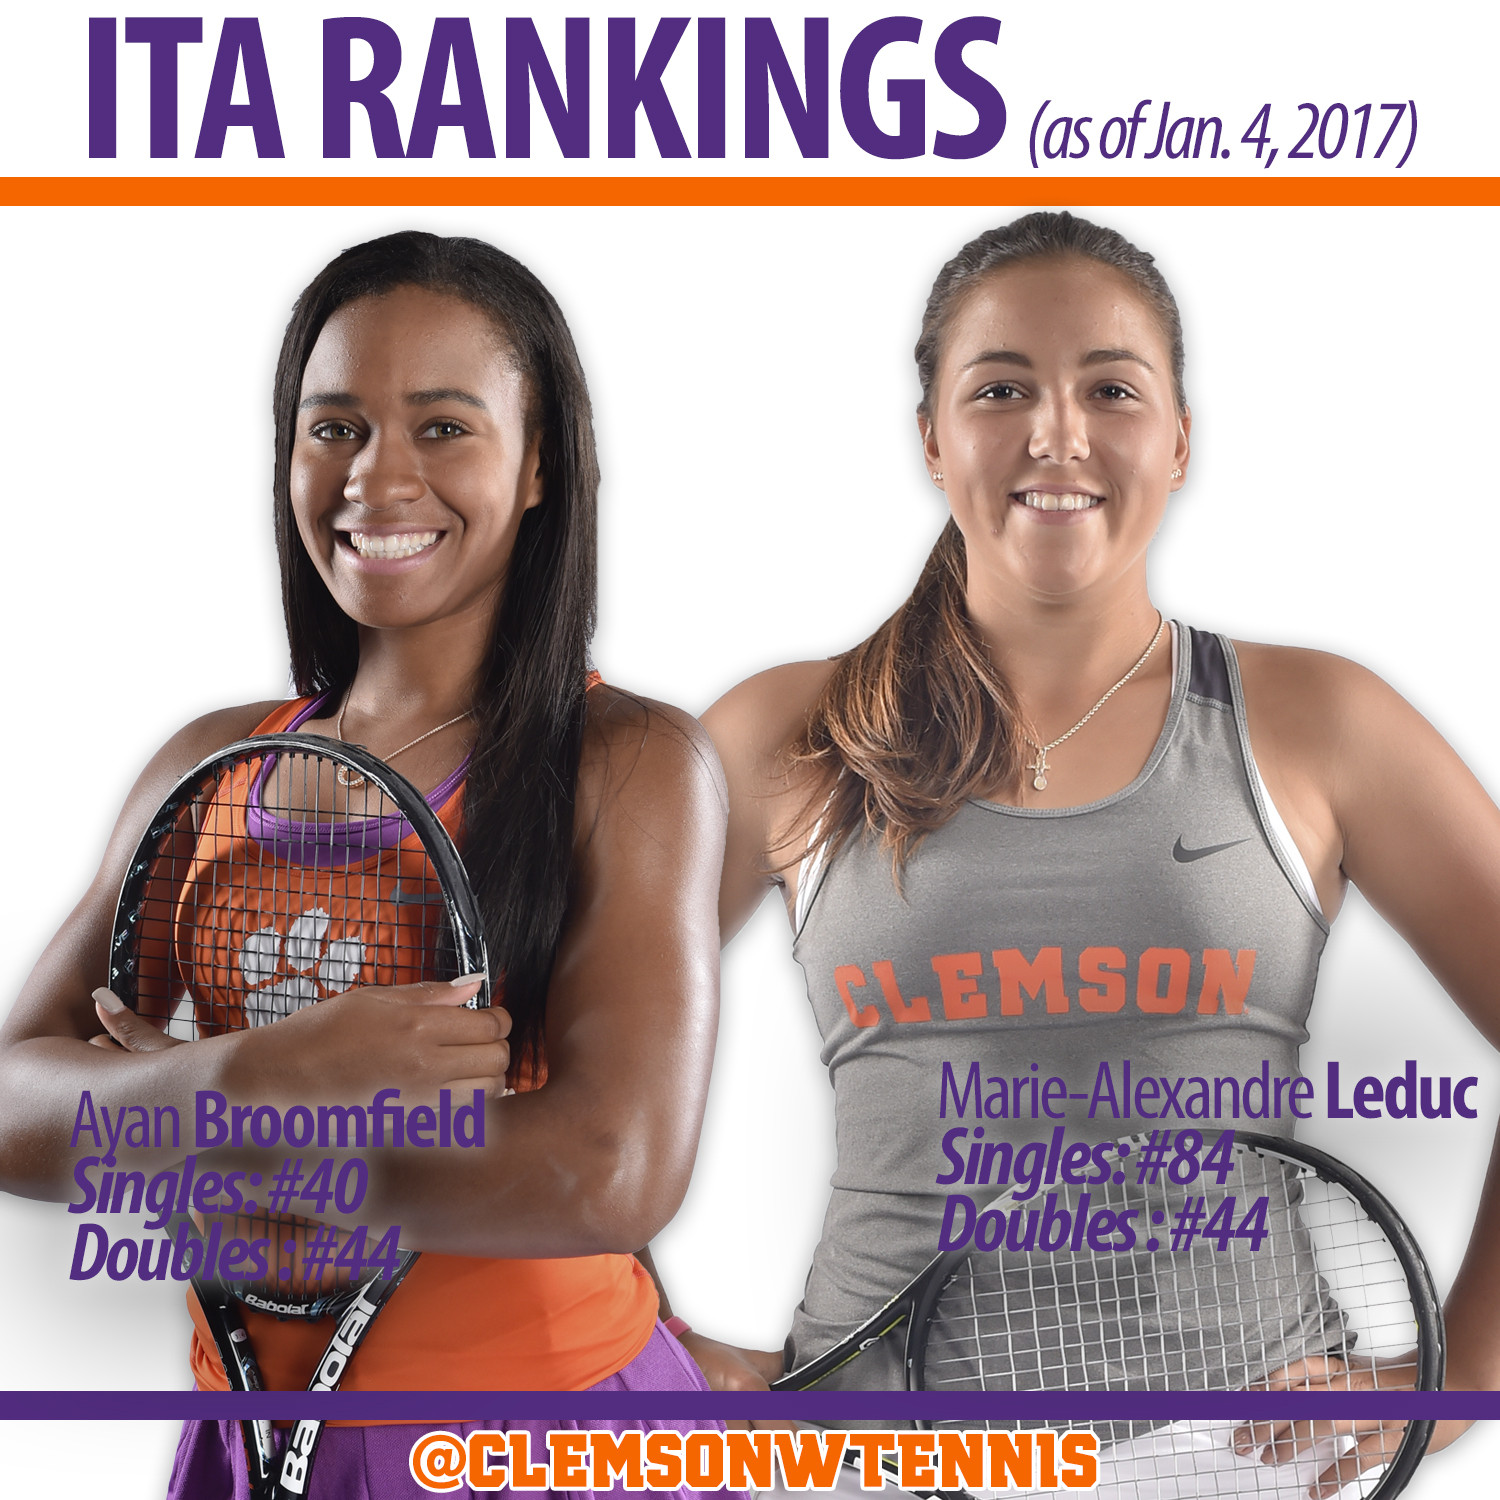 Two Tigers Ranked in Singles & Doubles